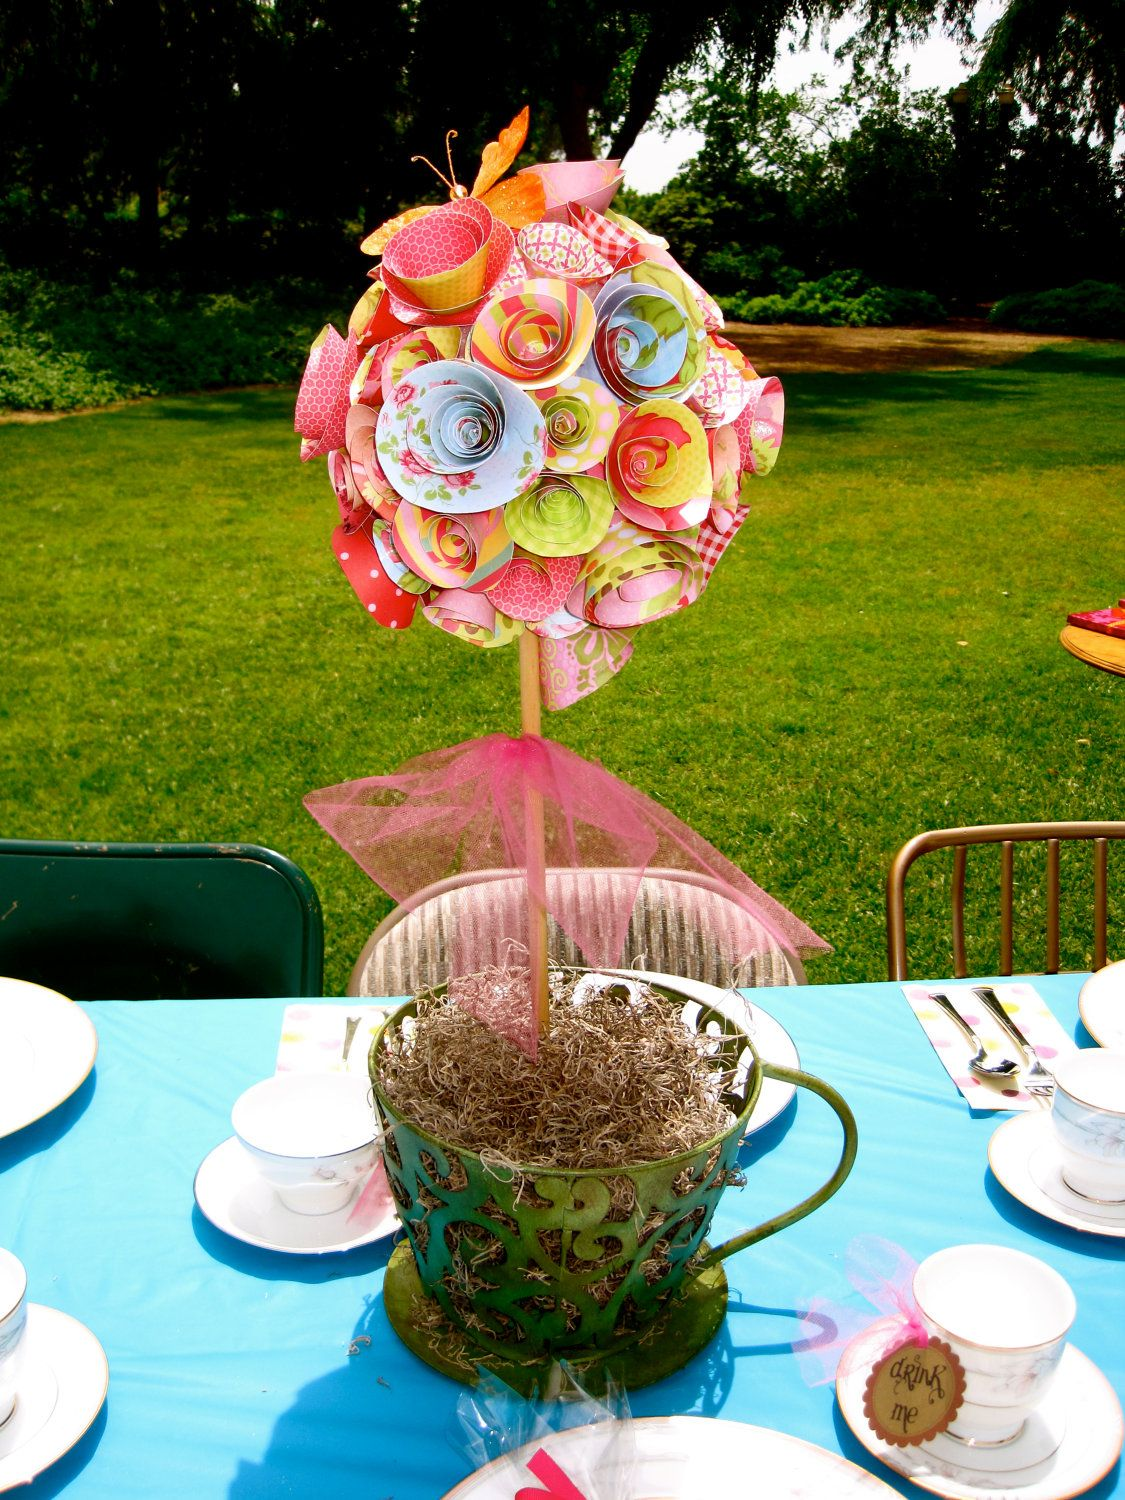 Alice In Wonderland Home Decorations Whimsical Colorful